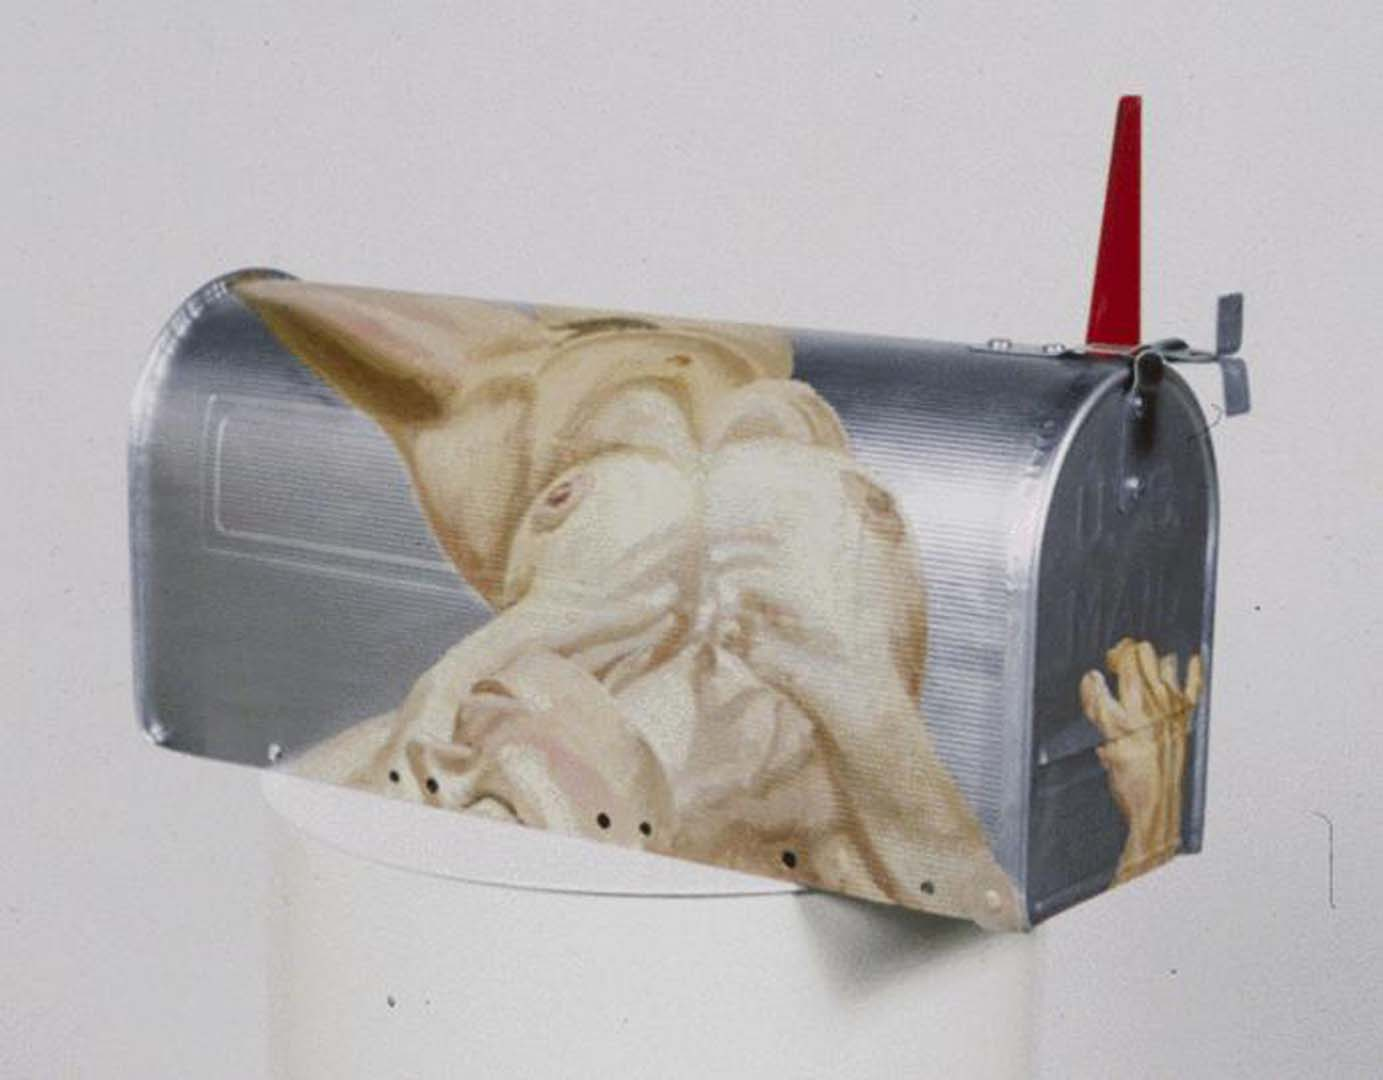 1992 Painted Mailbox for Archive American Art Oil on Mailbox Dimensions Unknown